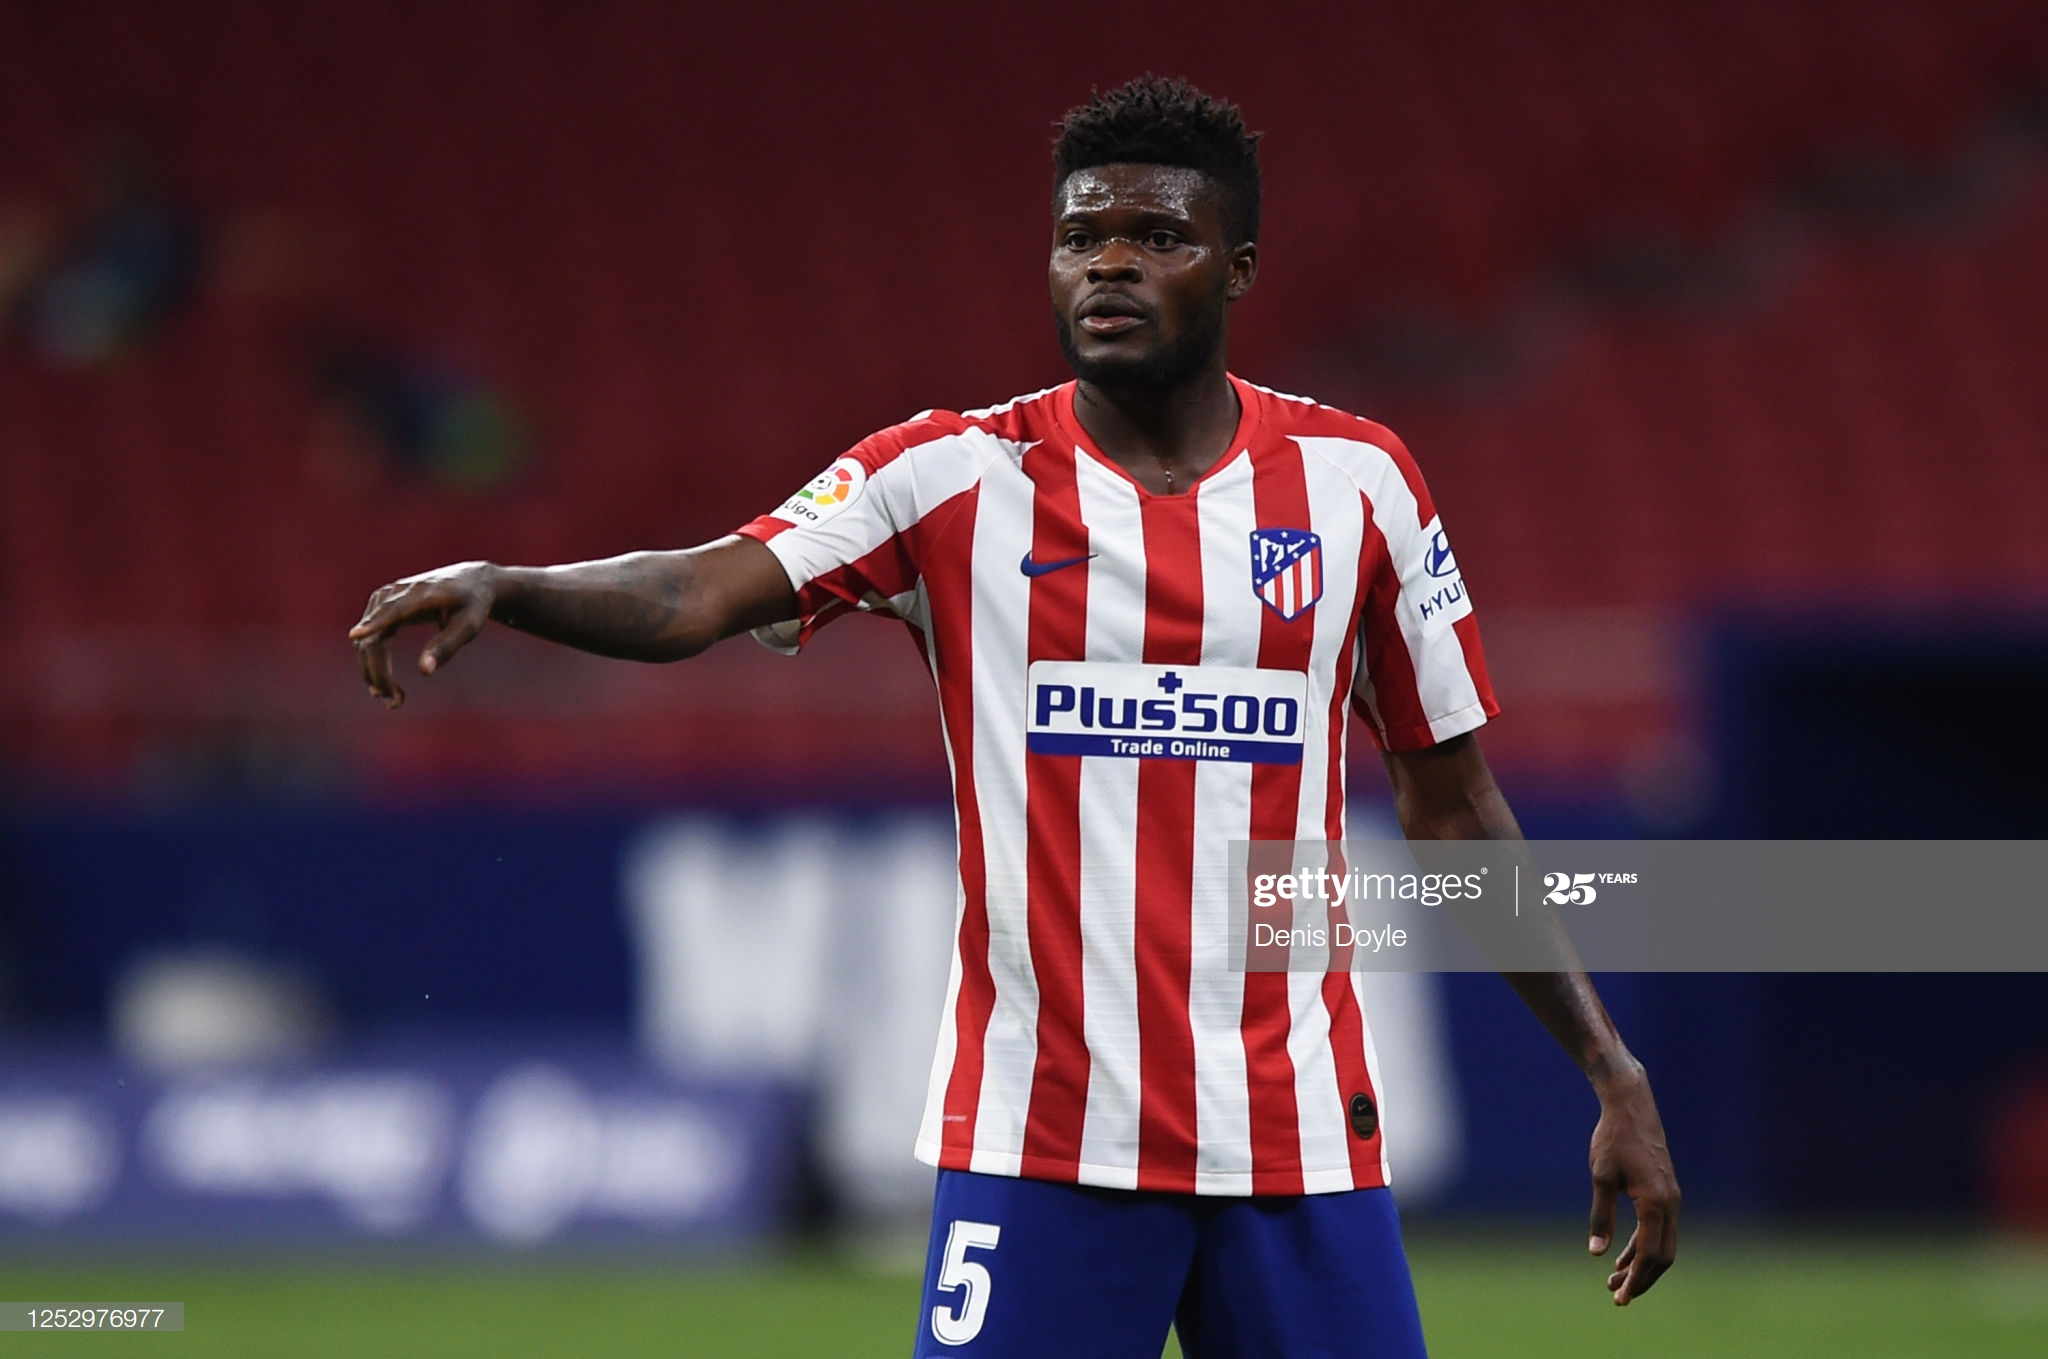 Thomas Partey likely to join Liverpool as Klopp cuts of Arsenal